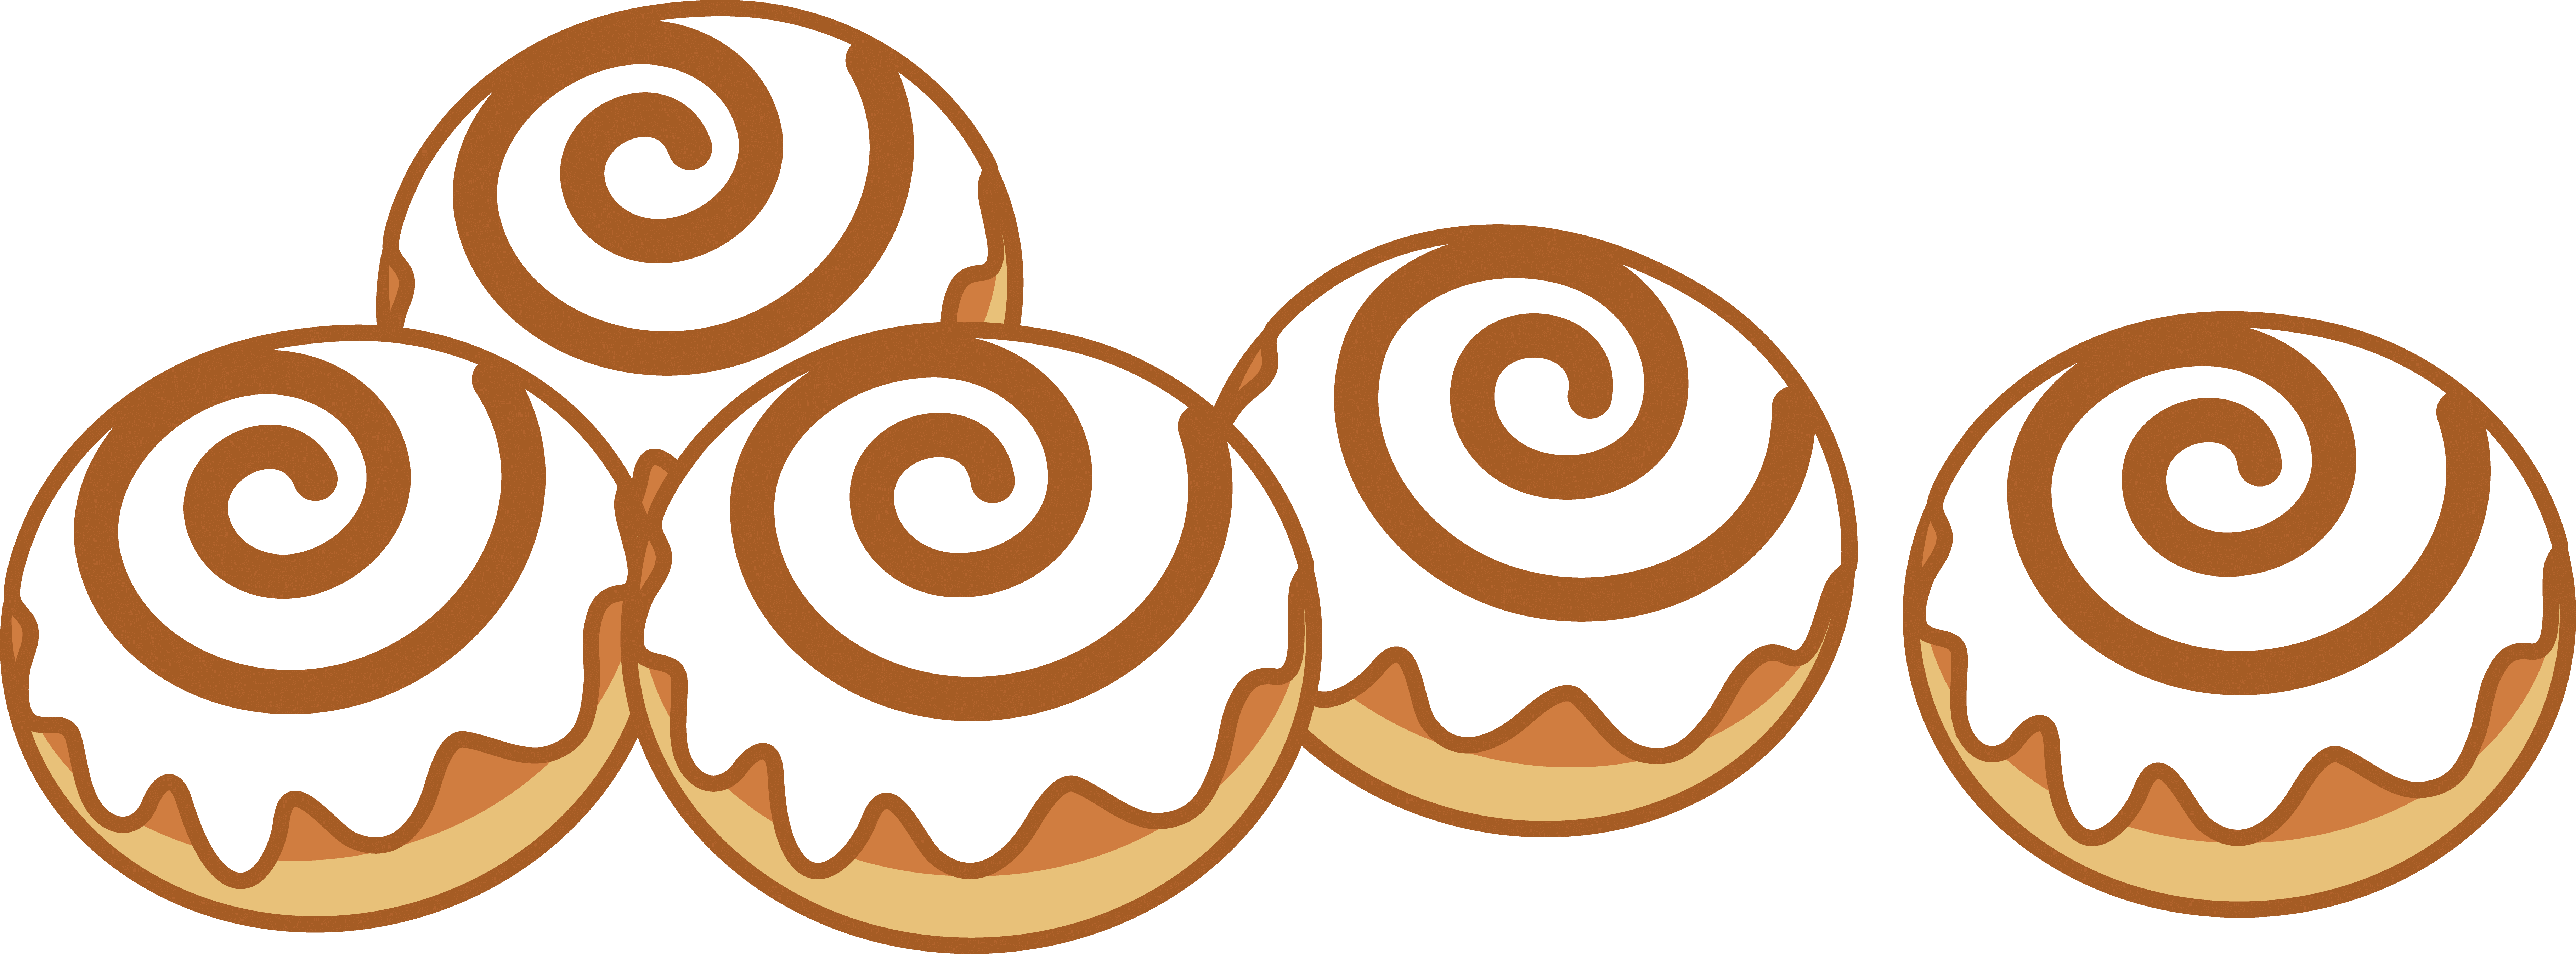 Cinnabon clipart png black and white library Cinnamon Roll Cliparts   Free download best Cinnamon Roll Cliparts ... png black and white library